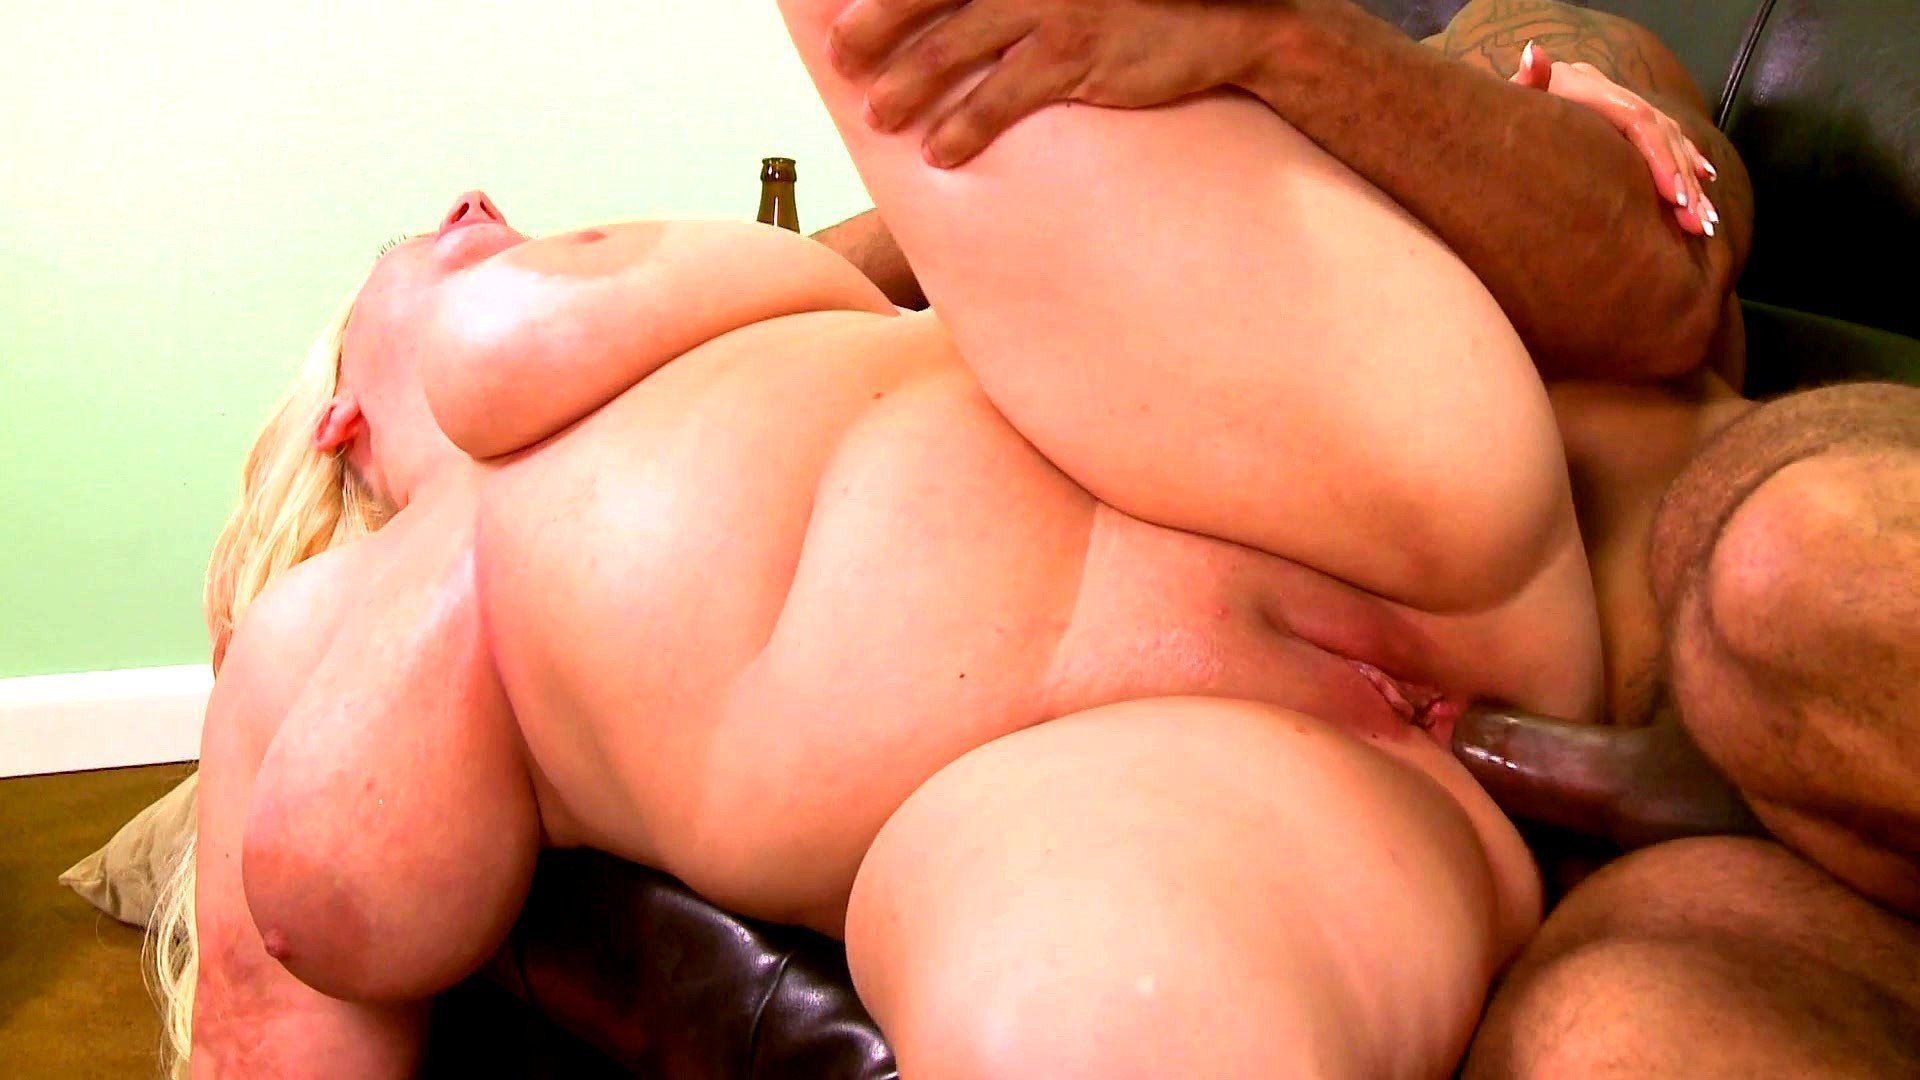 Sloppy bbw blowjobs free pics